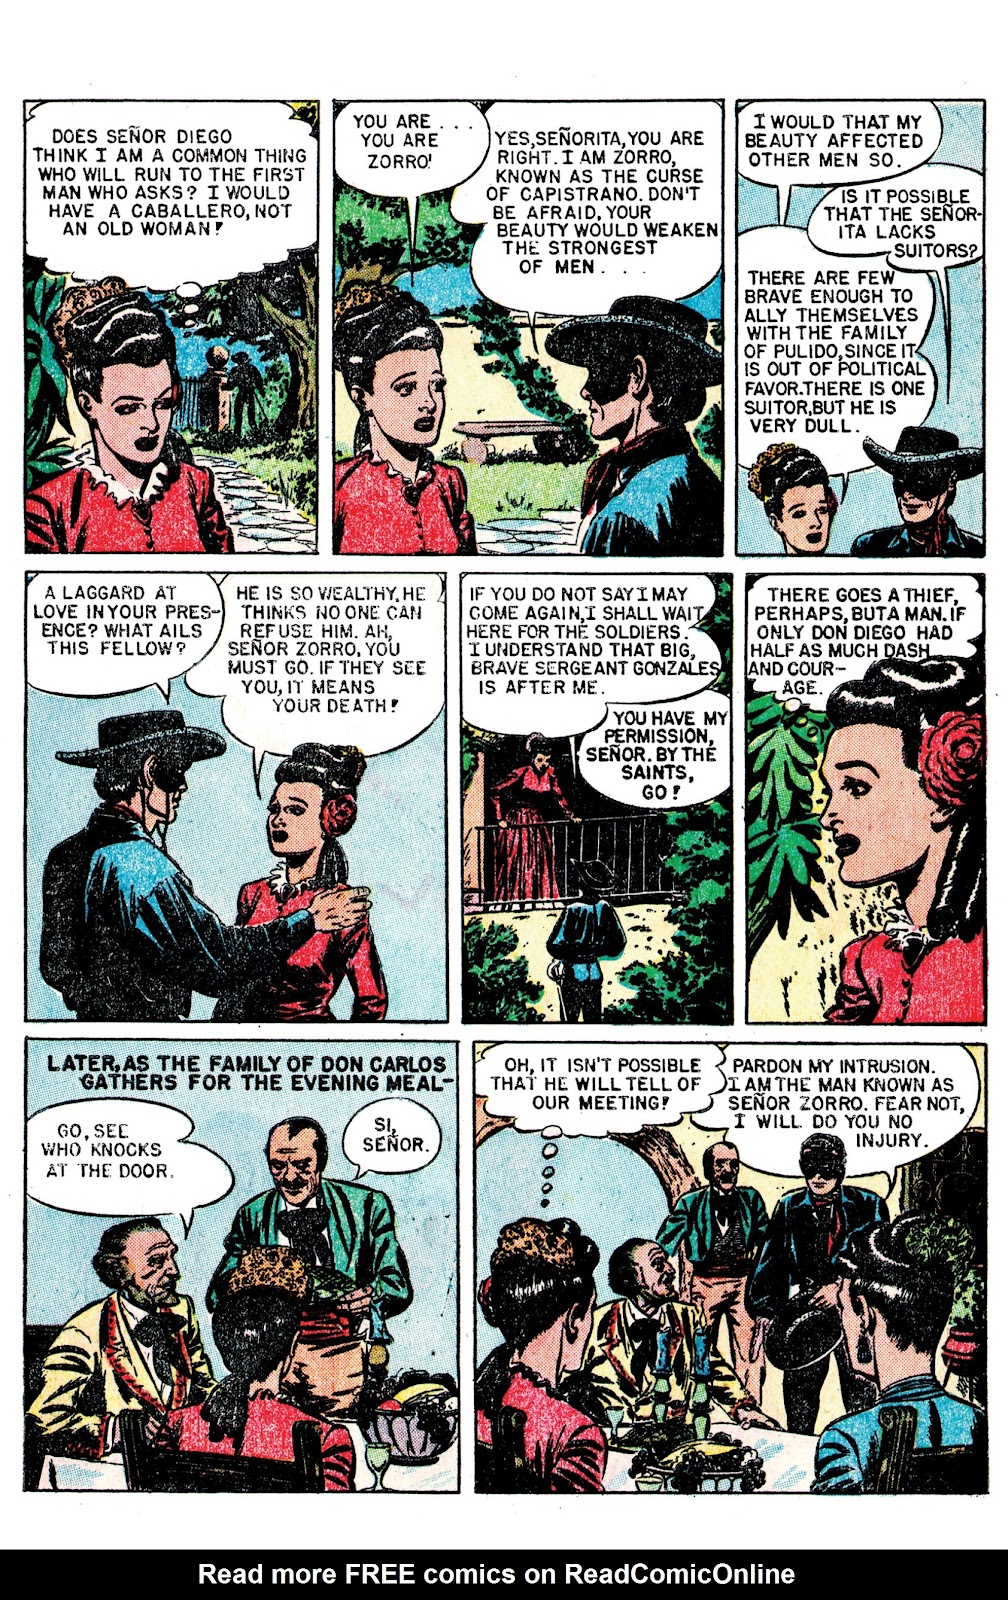 Read online AM Archives: The Mark of Zorro #1 1949 Dell Edition comic -  Issue #1 1949 Dell Edition Full - 5